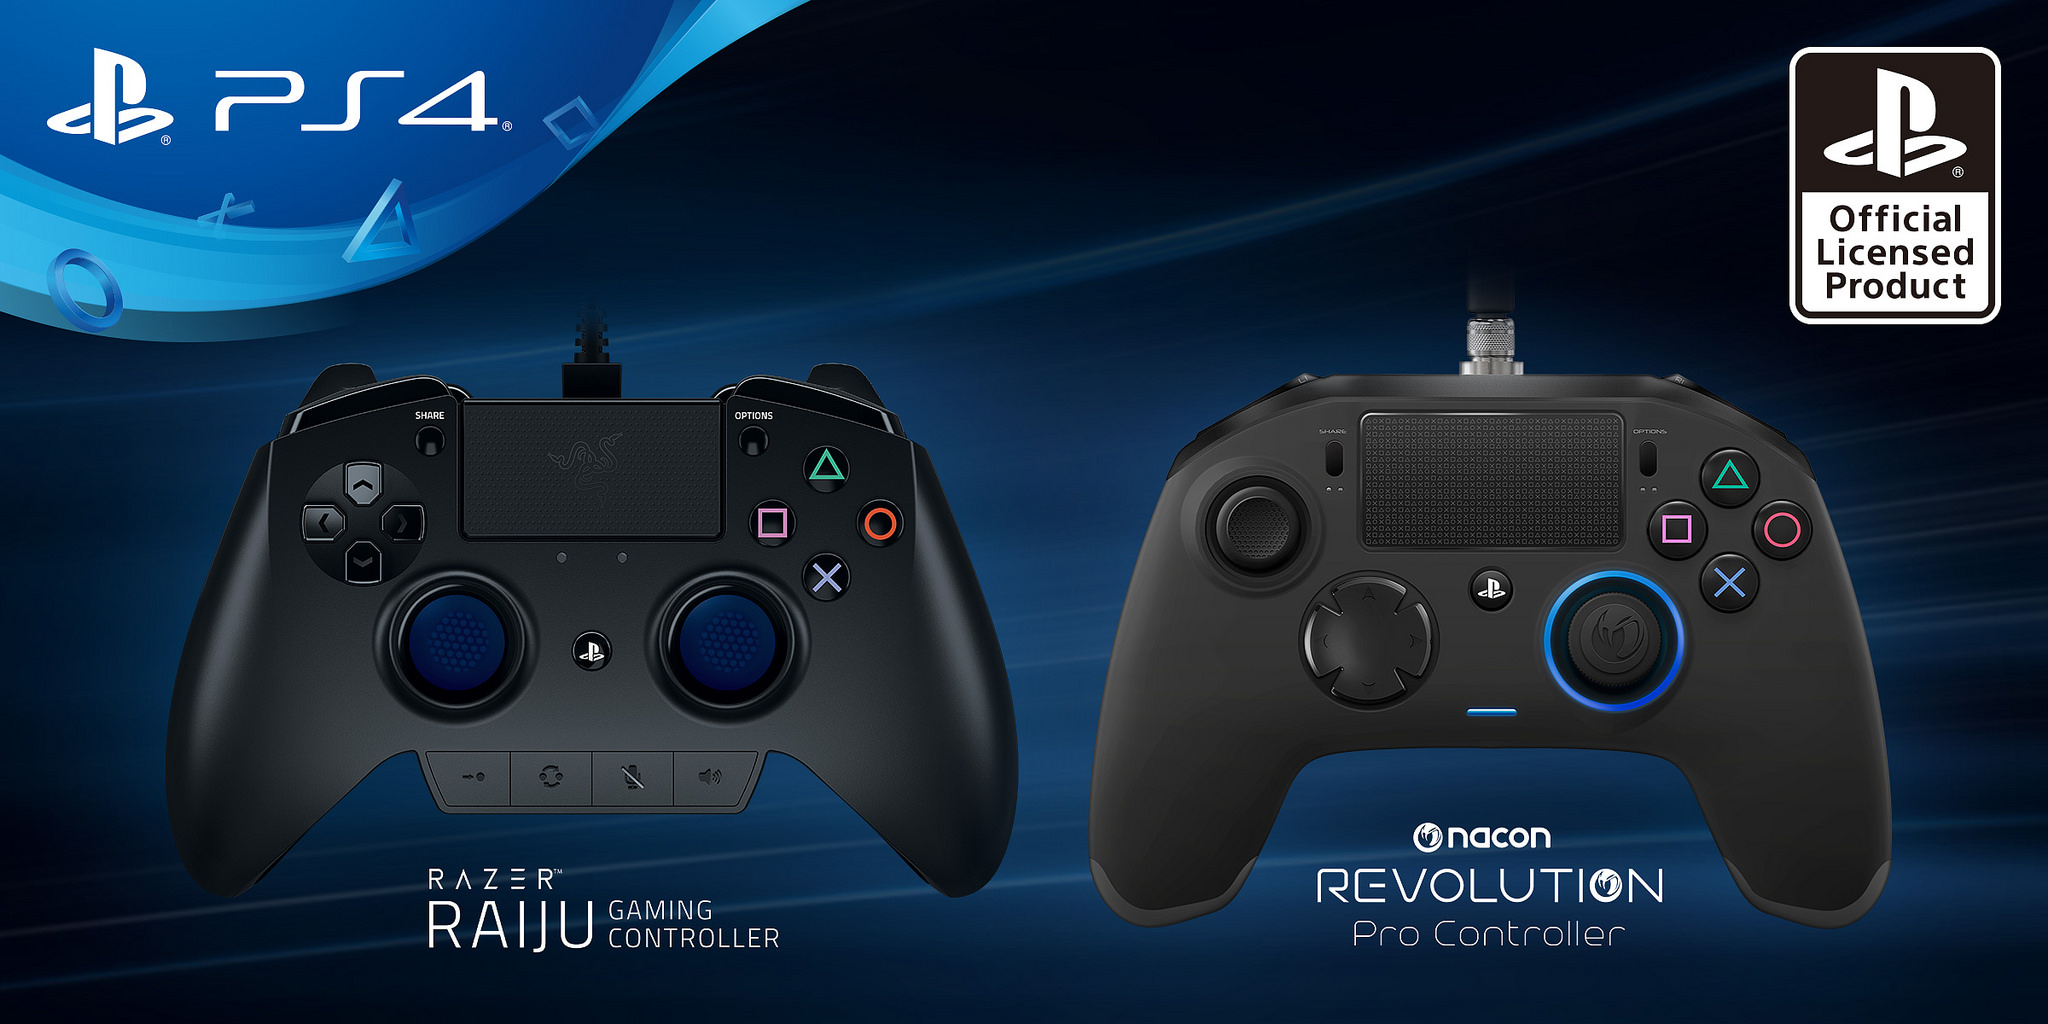 PS4 Getting Two Licensed 'Pro' Controllers